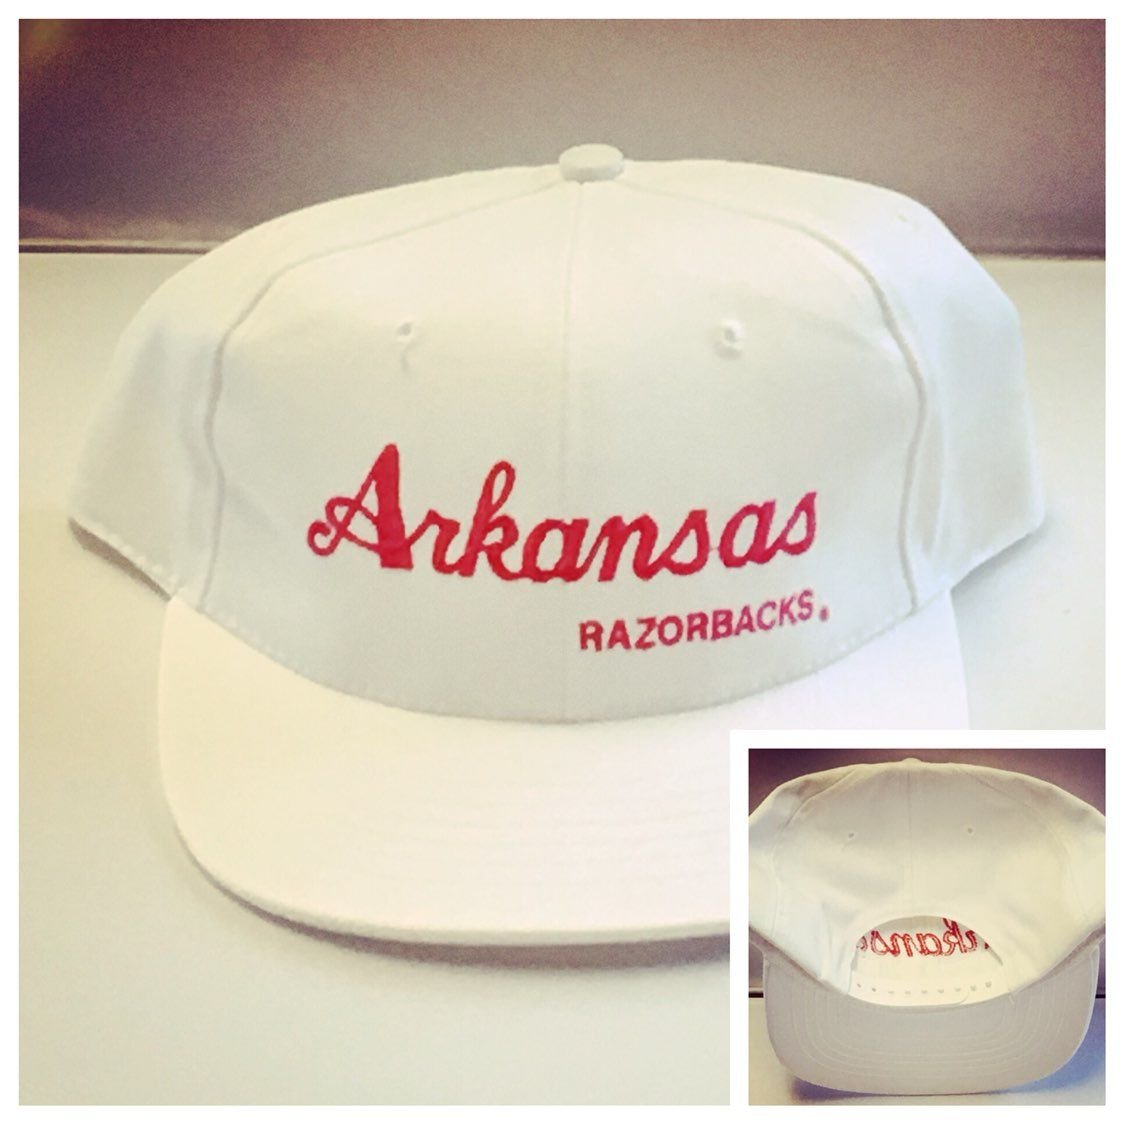 Arkansas Razorbacks Vintage Snapback Cap Mercari The